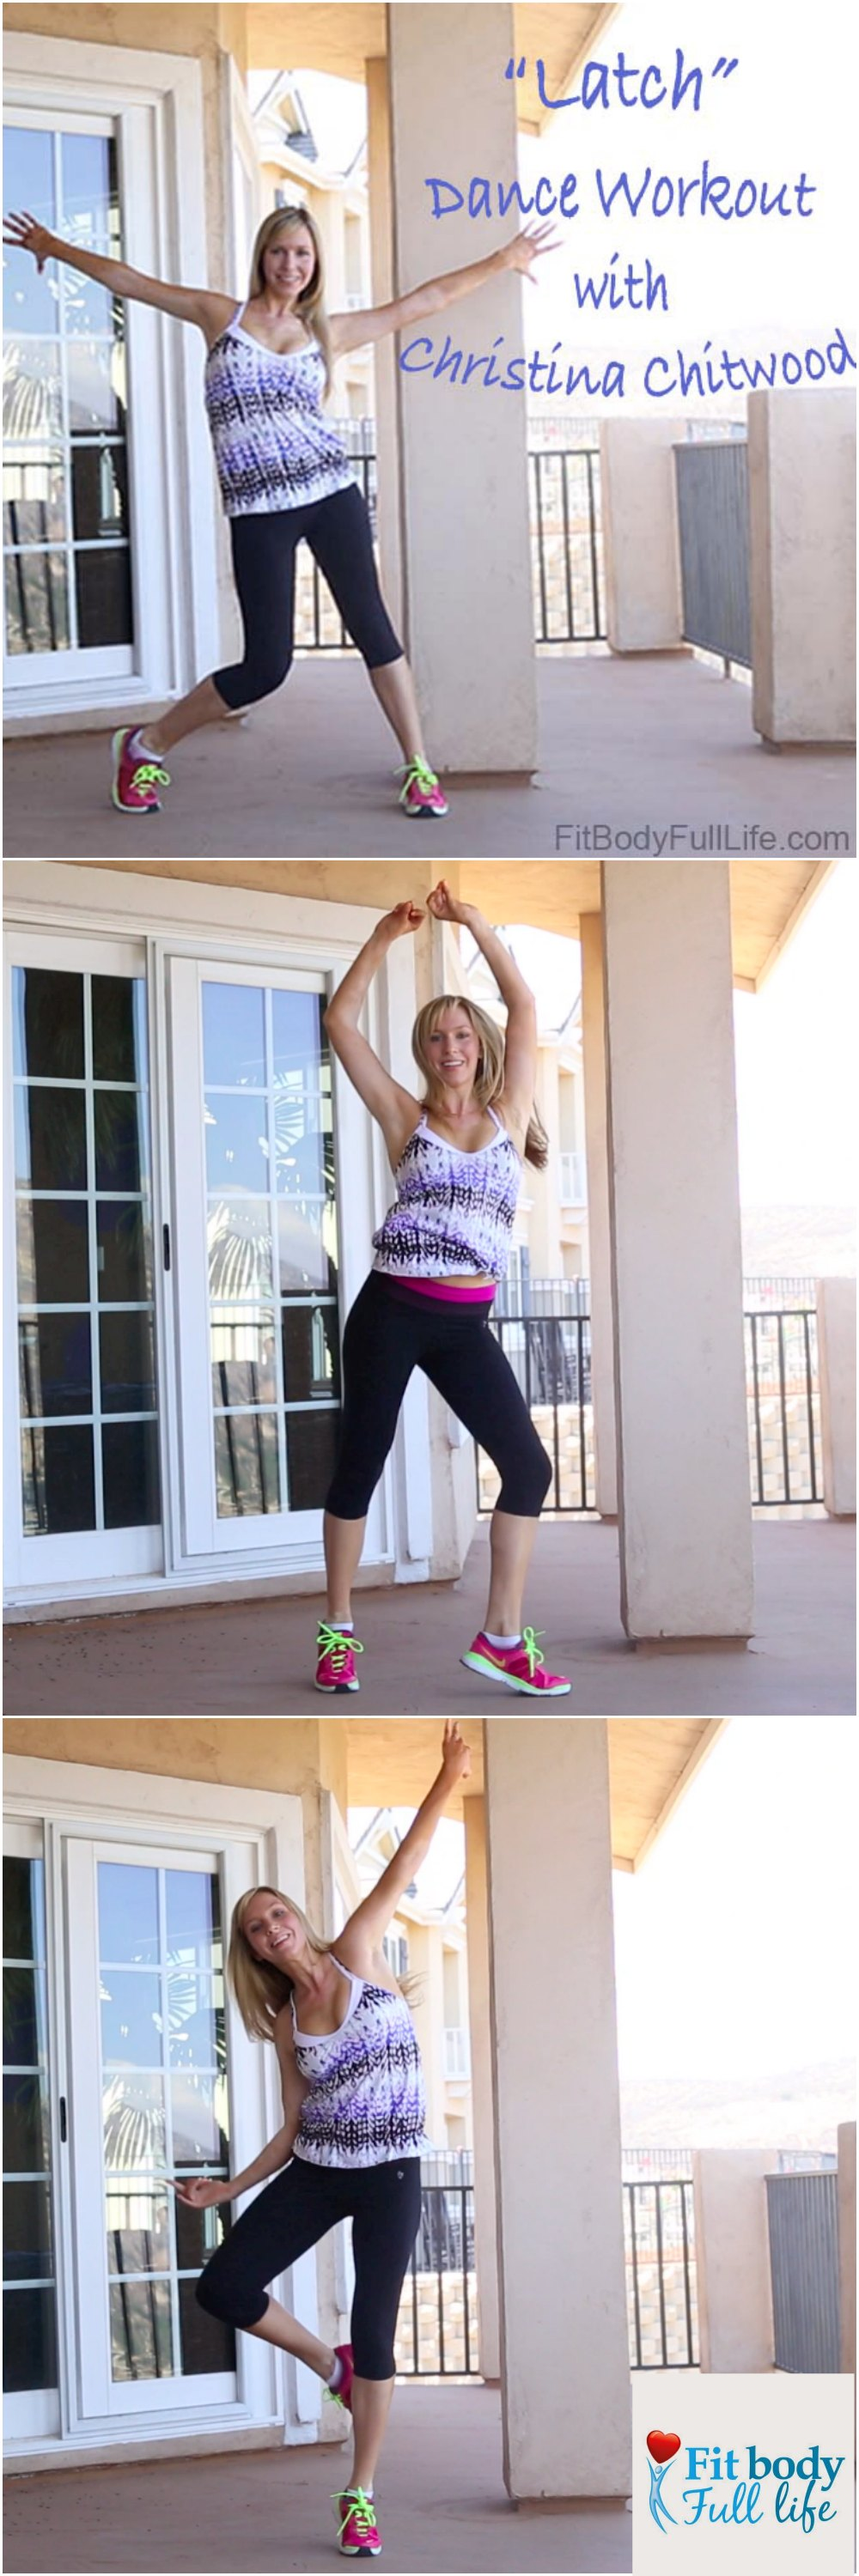 """""""Latch"""" Dance Workout with Christina Chitwood - Vertical Image"""